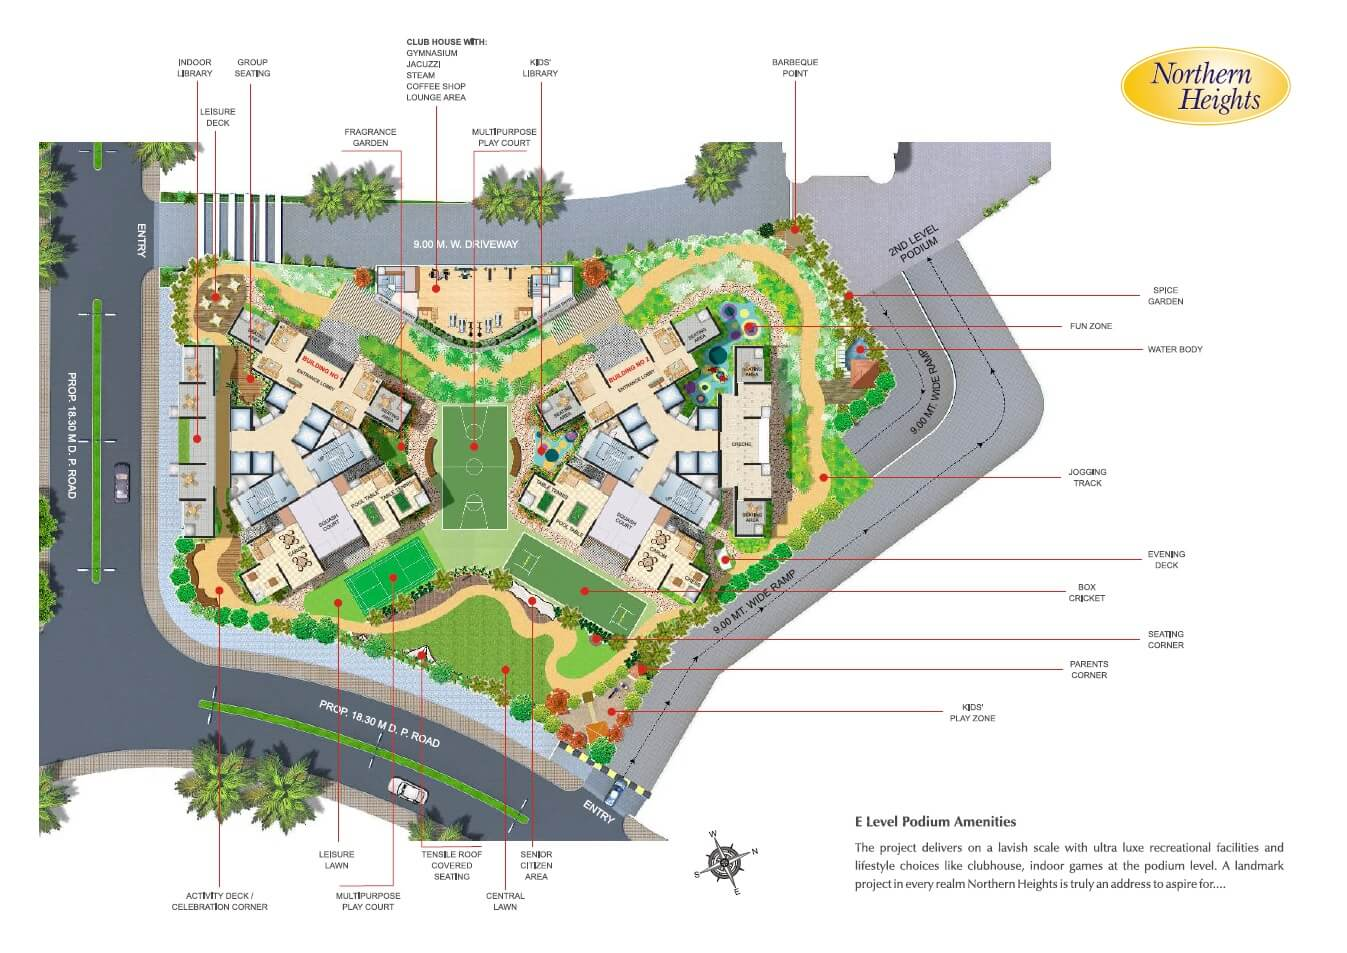 n rose northern heights master plan image1